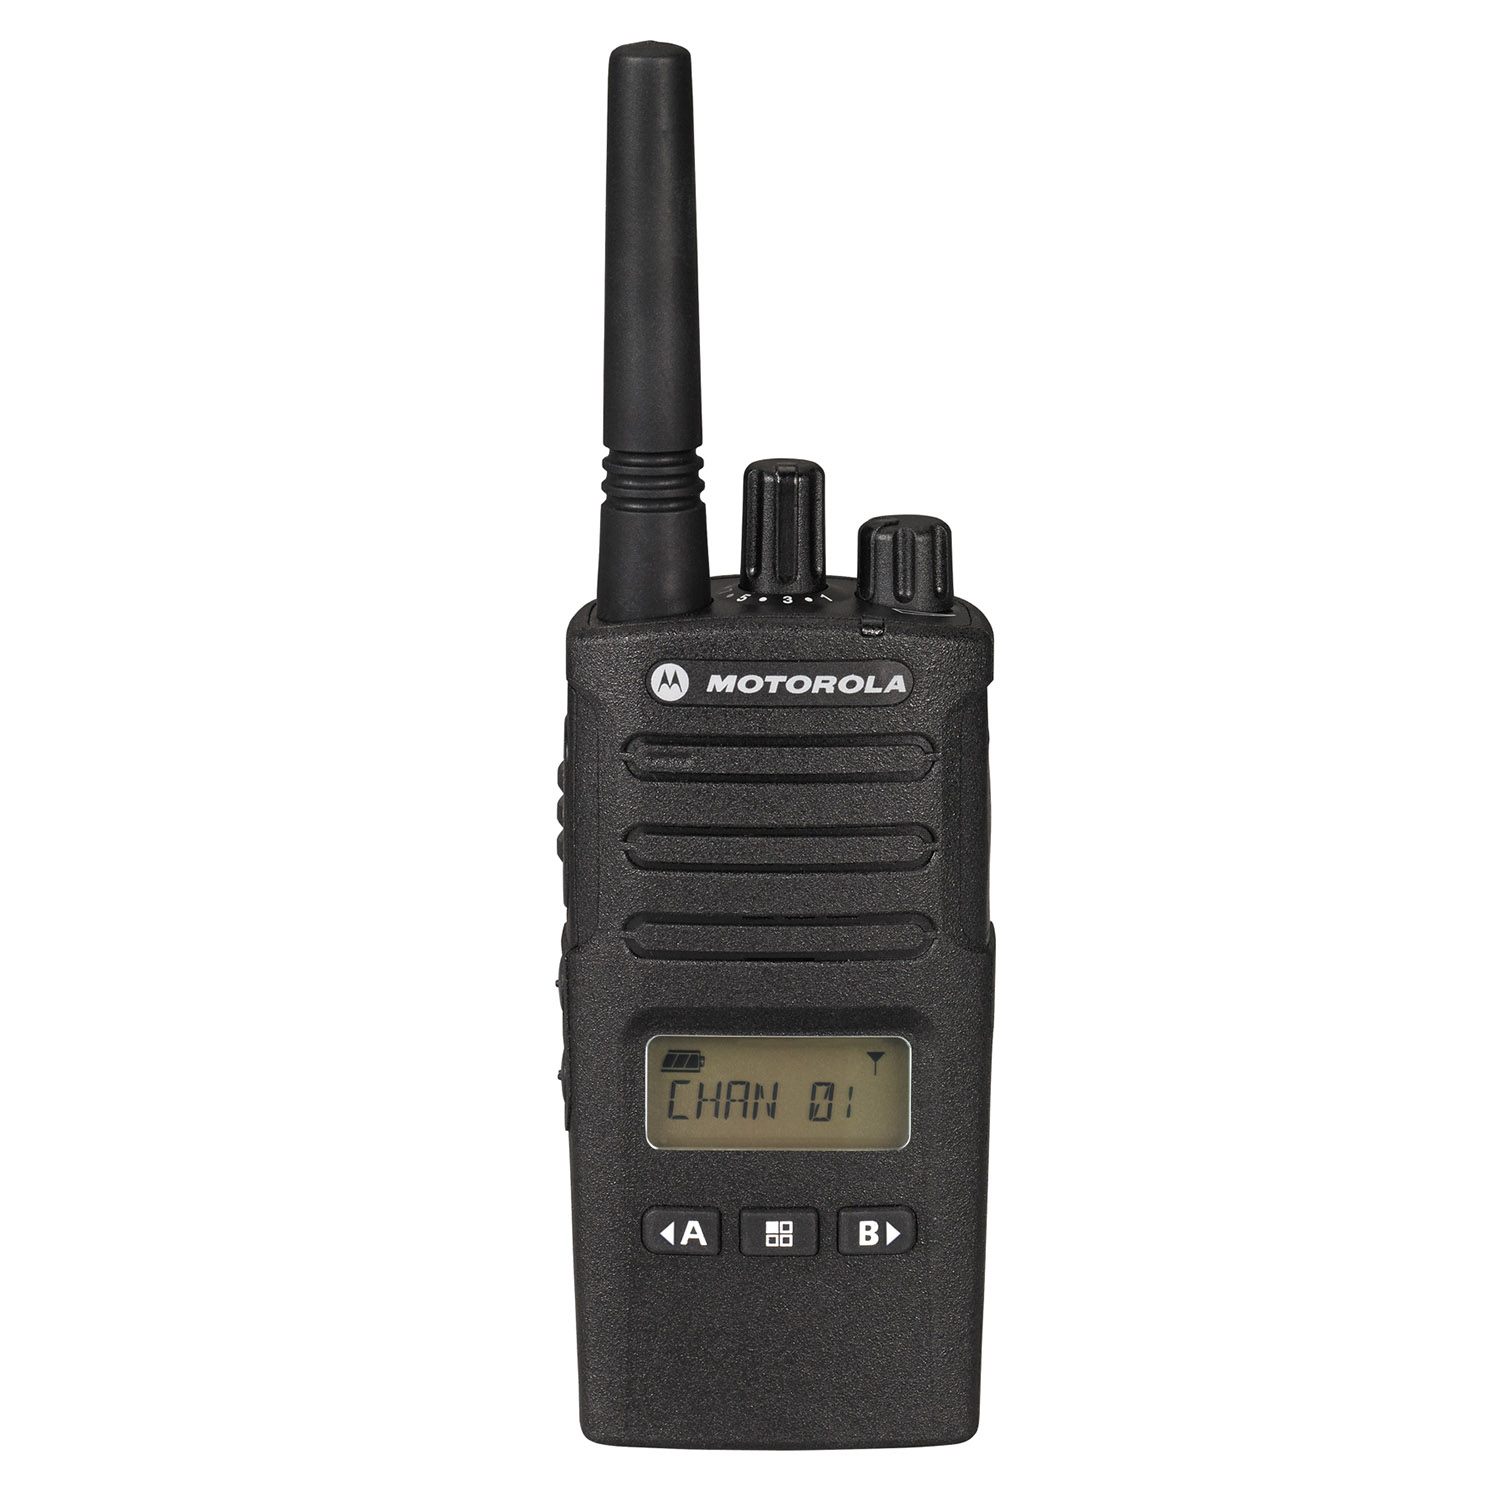 Motorola RMU2080d UHF 8 Channel Radio